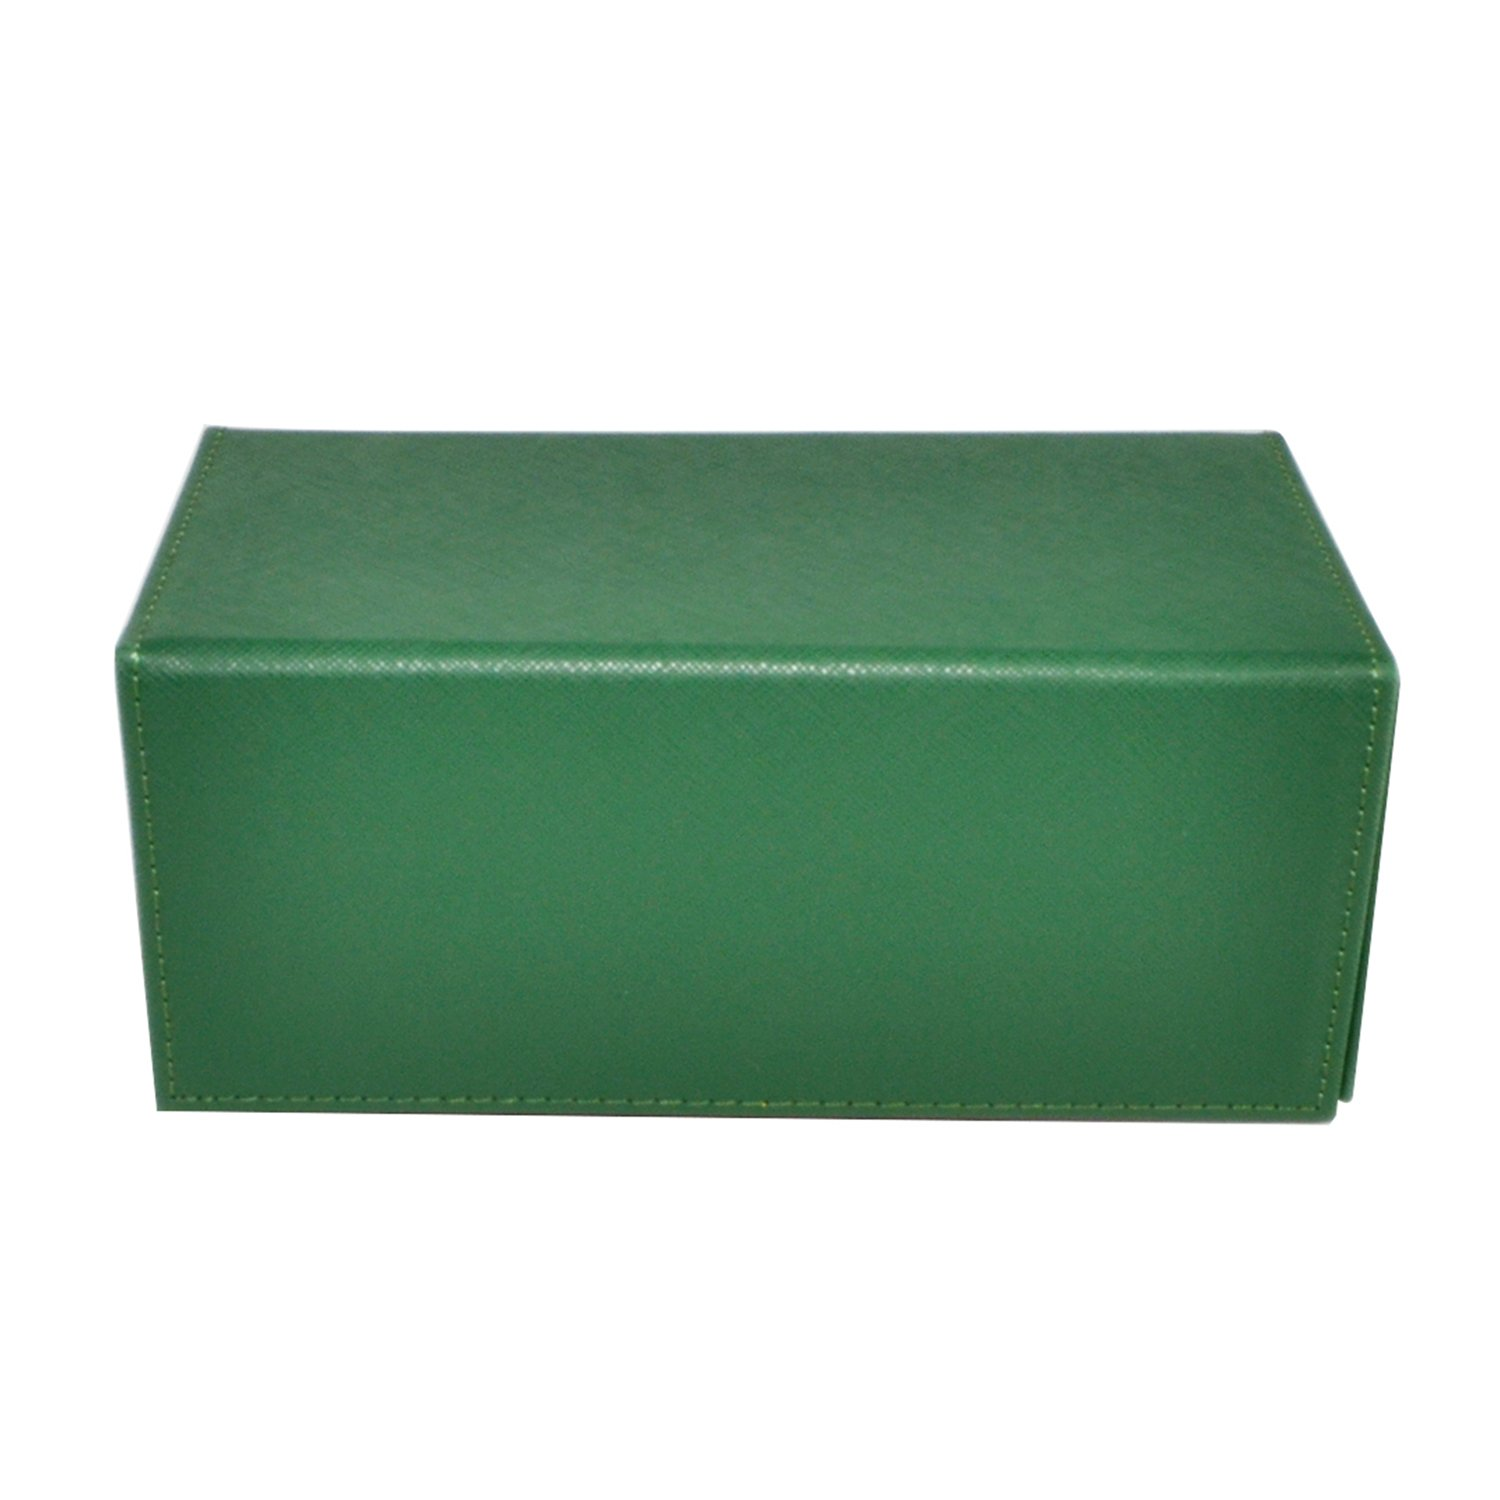 Creation Line Deck Box - Large Green by Dex Protection